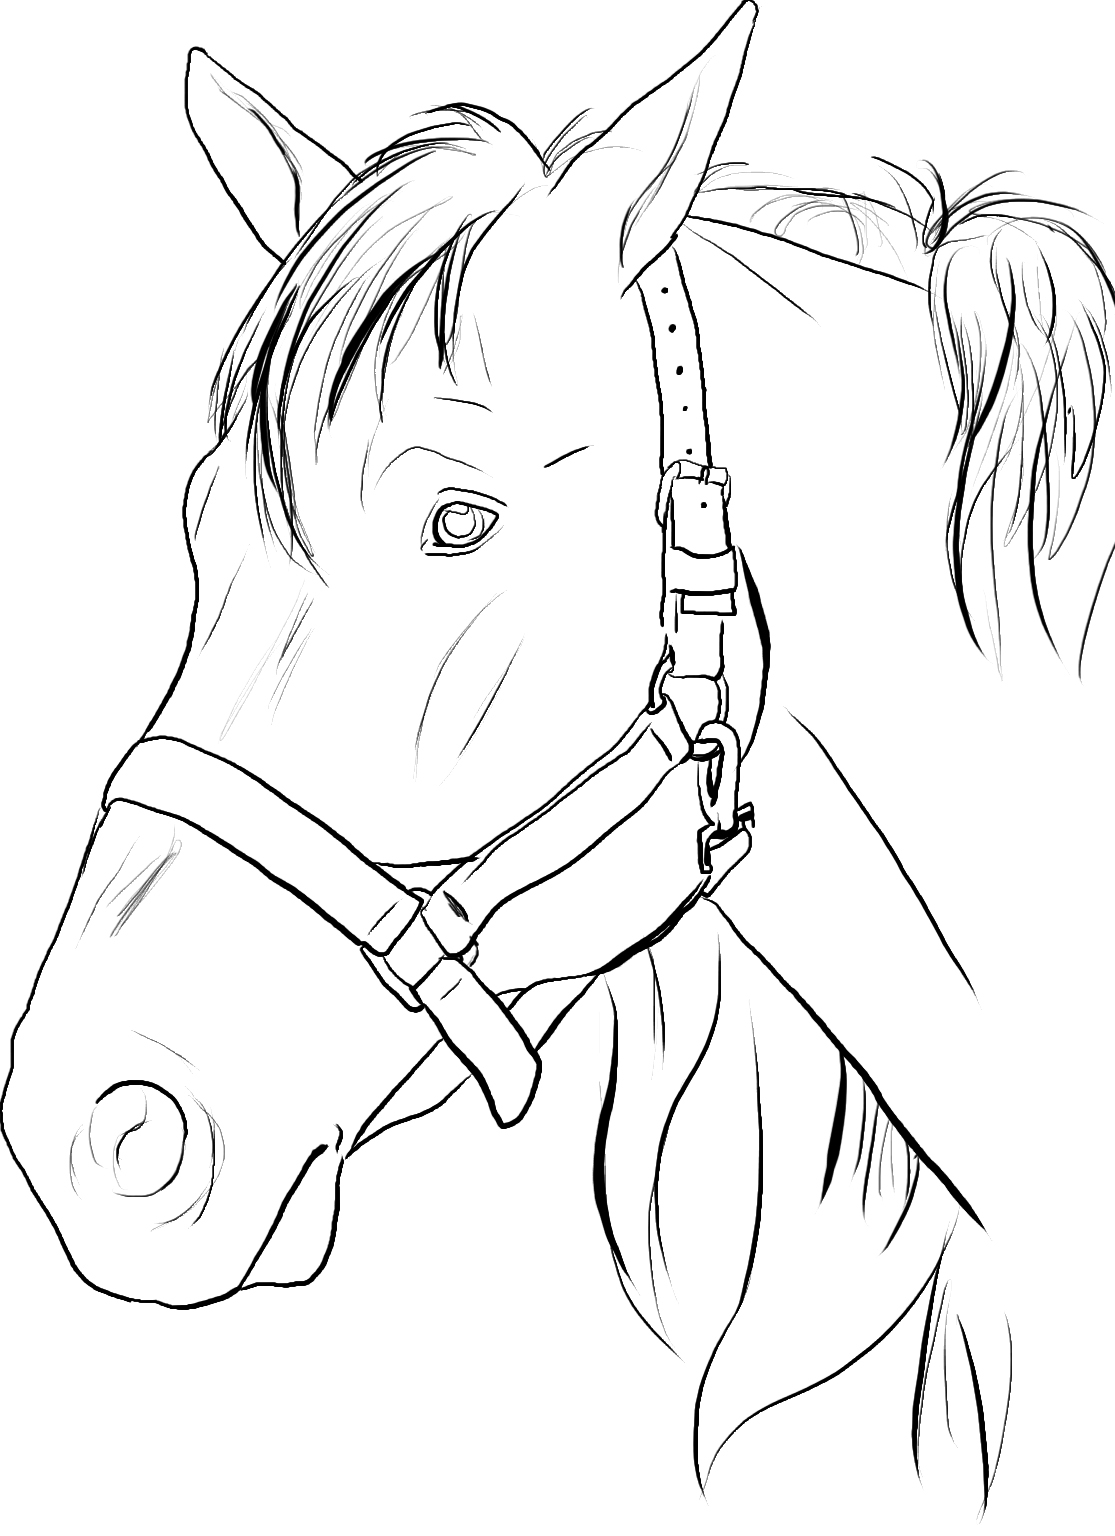 Free Printable Horse Coloring Pages For Kids Animal Place Coloring Pages With